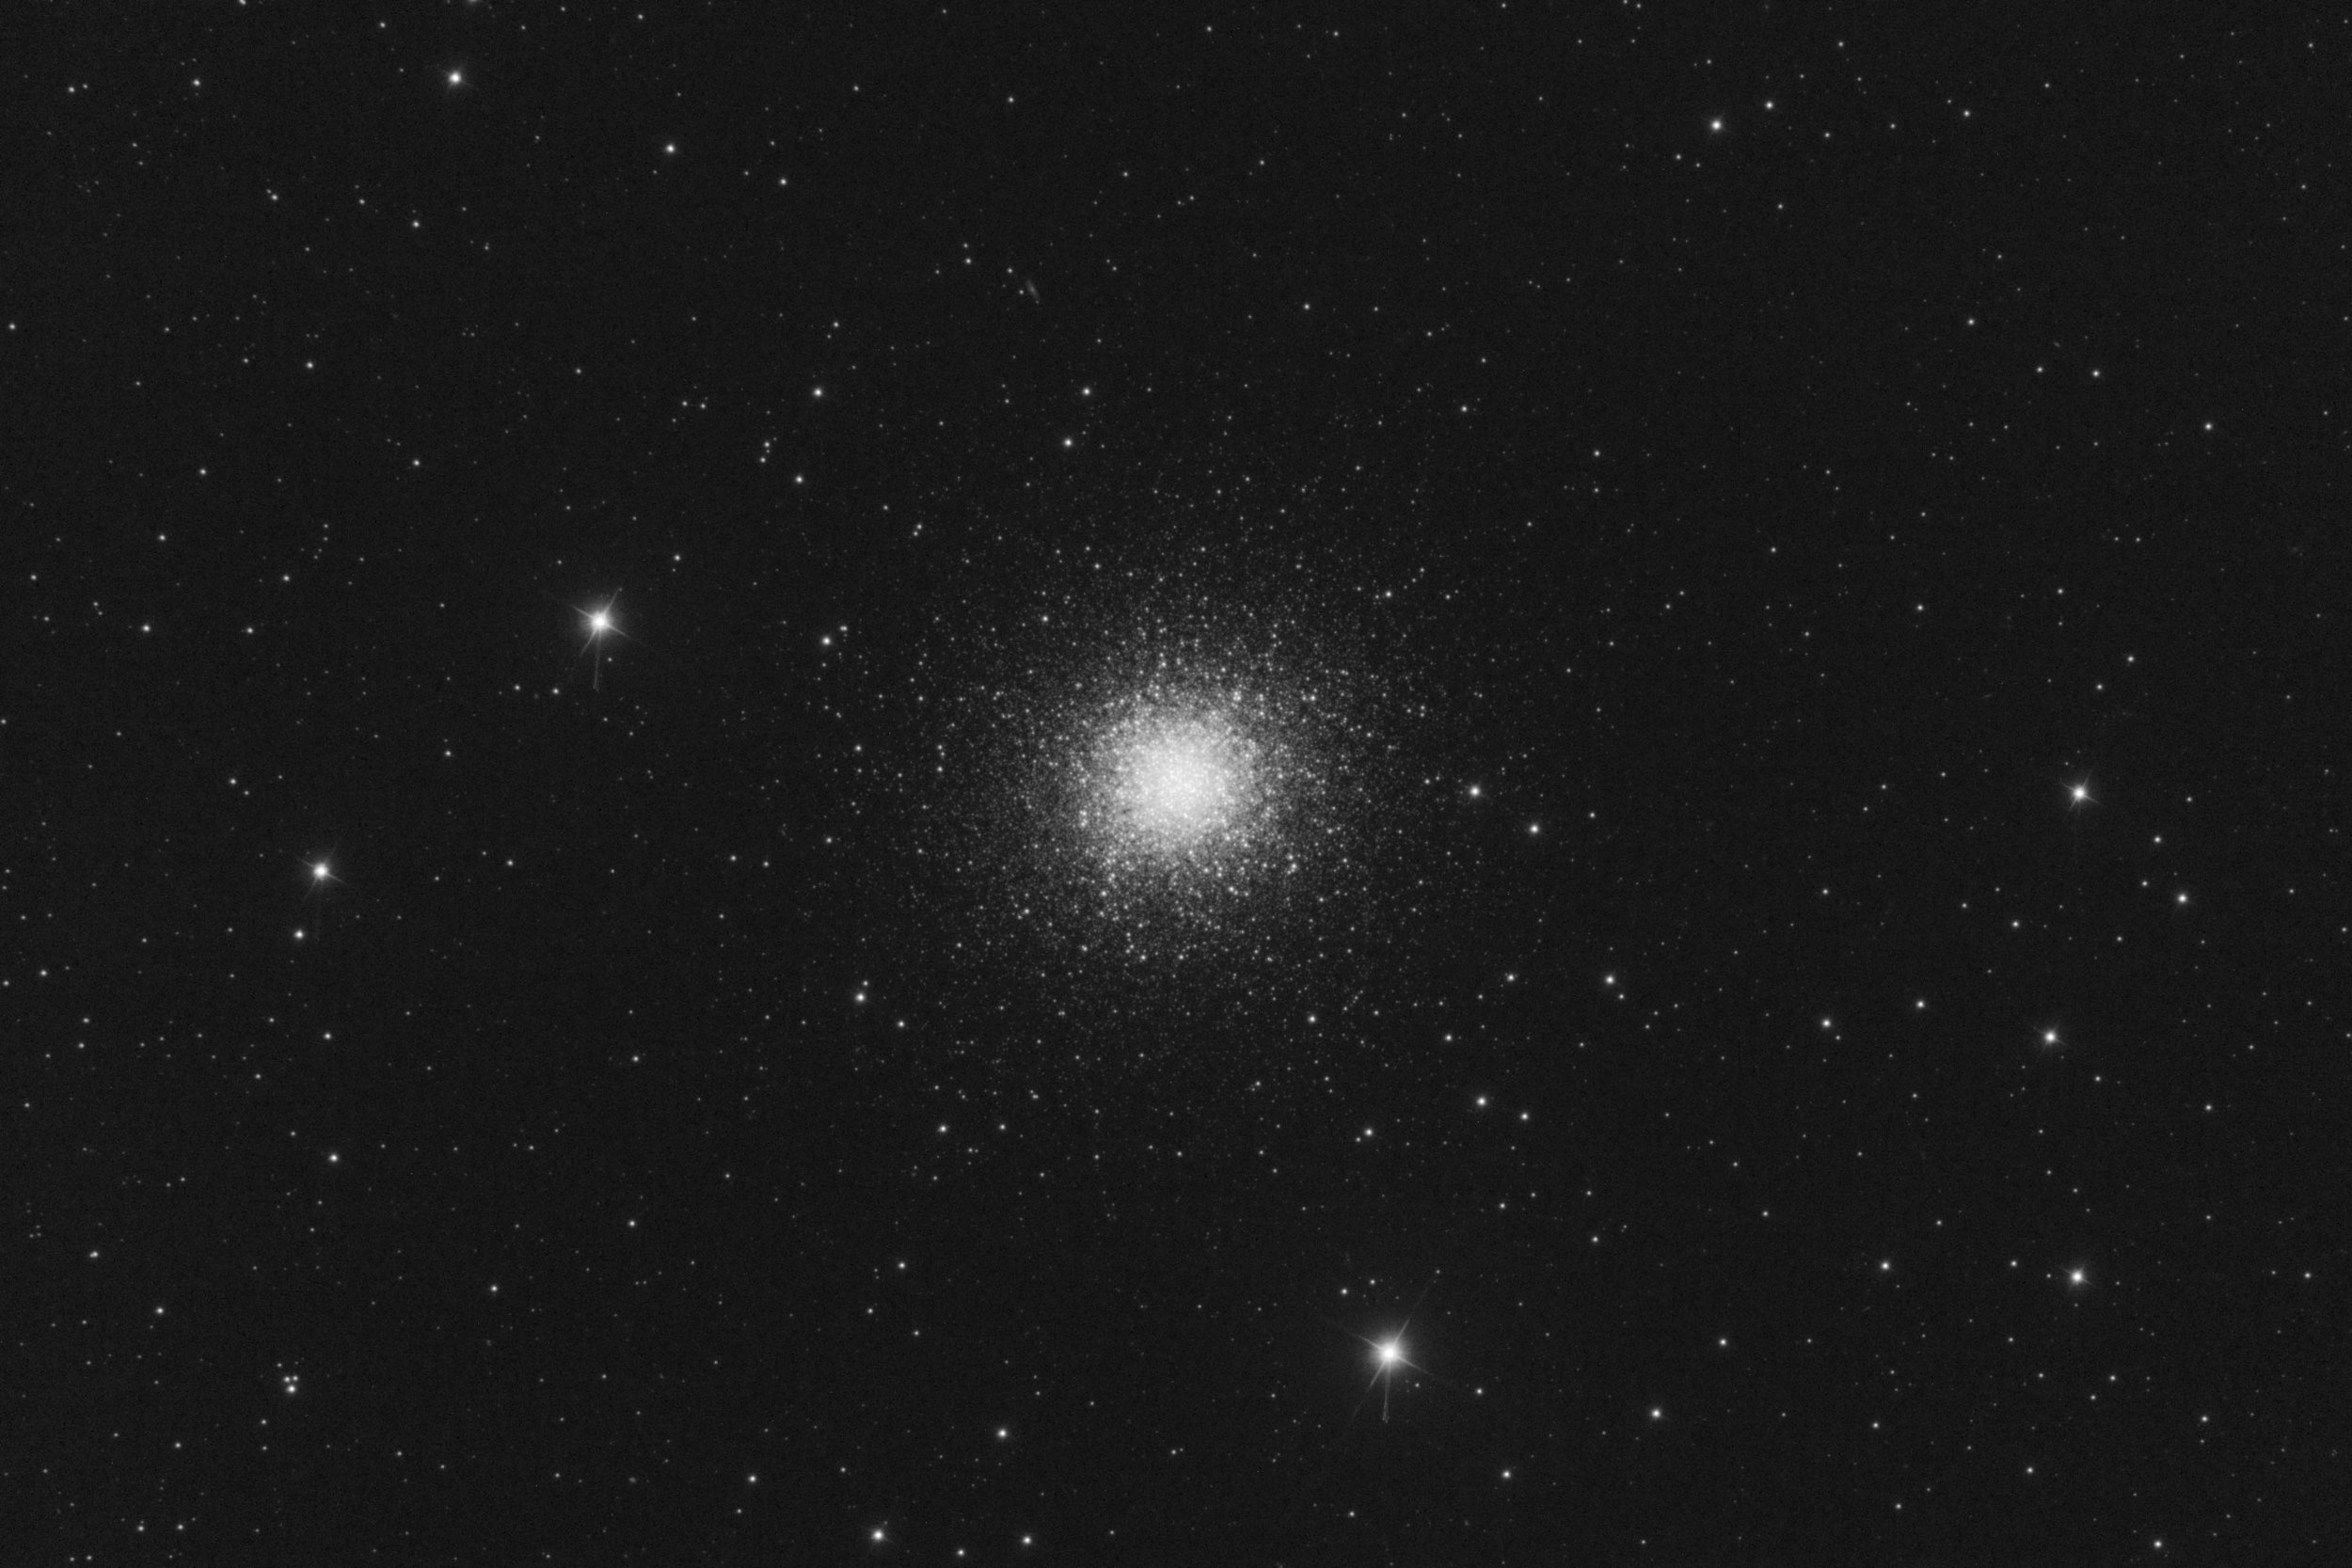 We tried to get some data on  Messier 13 (The Hercules Globular Cluster)  but we were only able to get this one ten minute exposure with the blue filter.